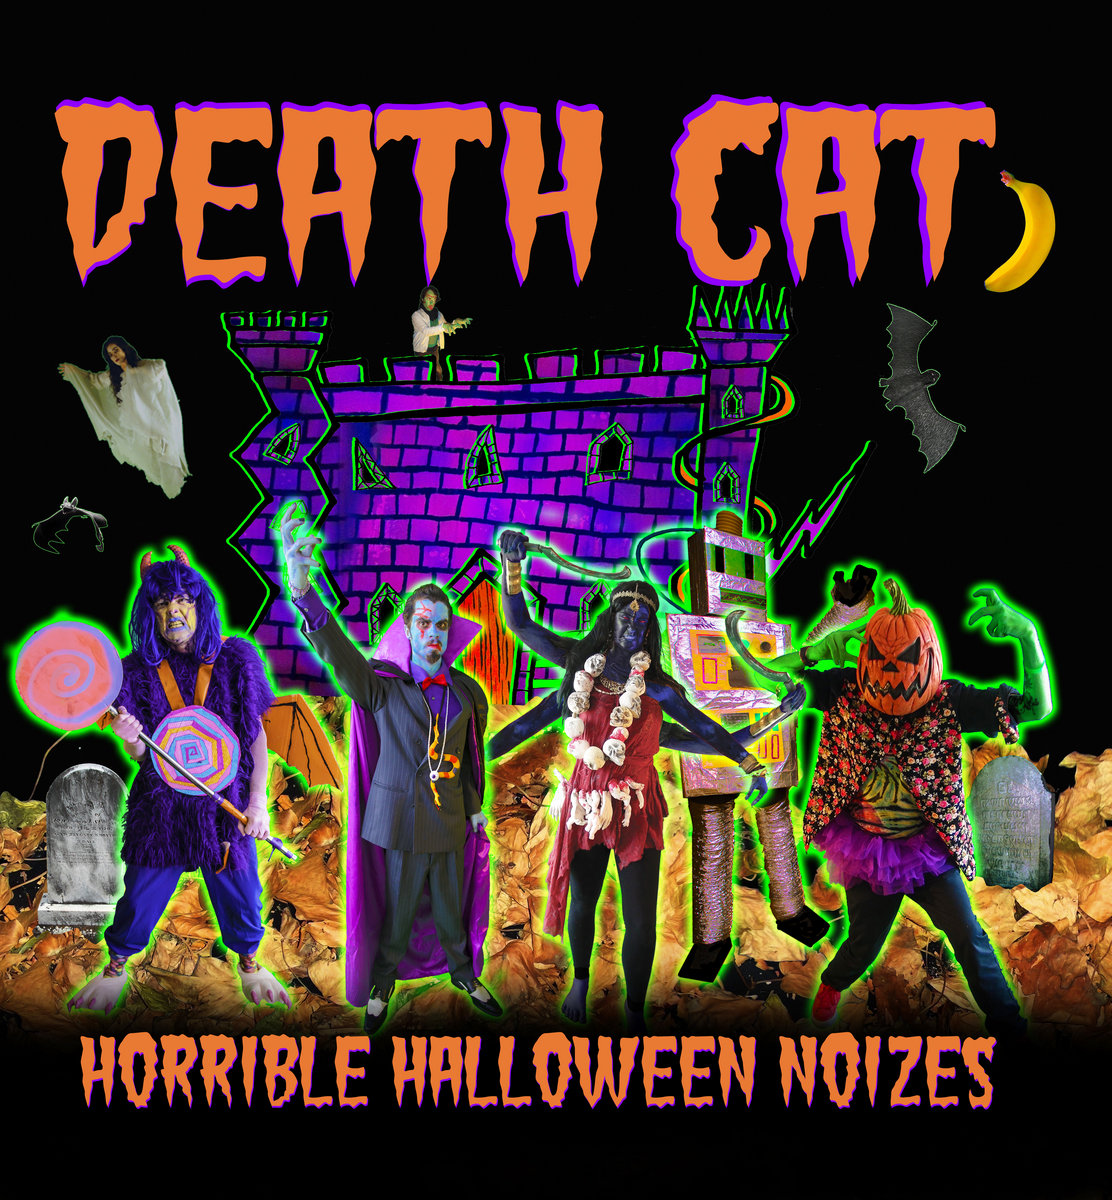 a mixture of spooky sounds noisy songs taking you from an alley way car crash through a storm in a graveyard into castle cat